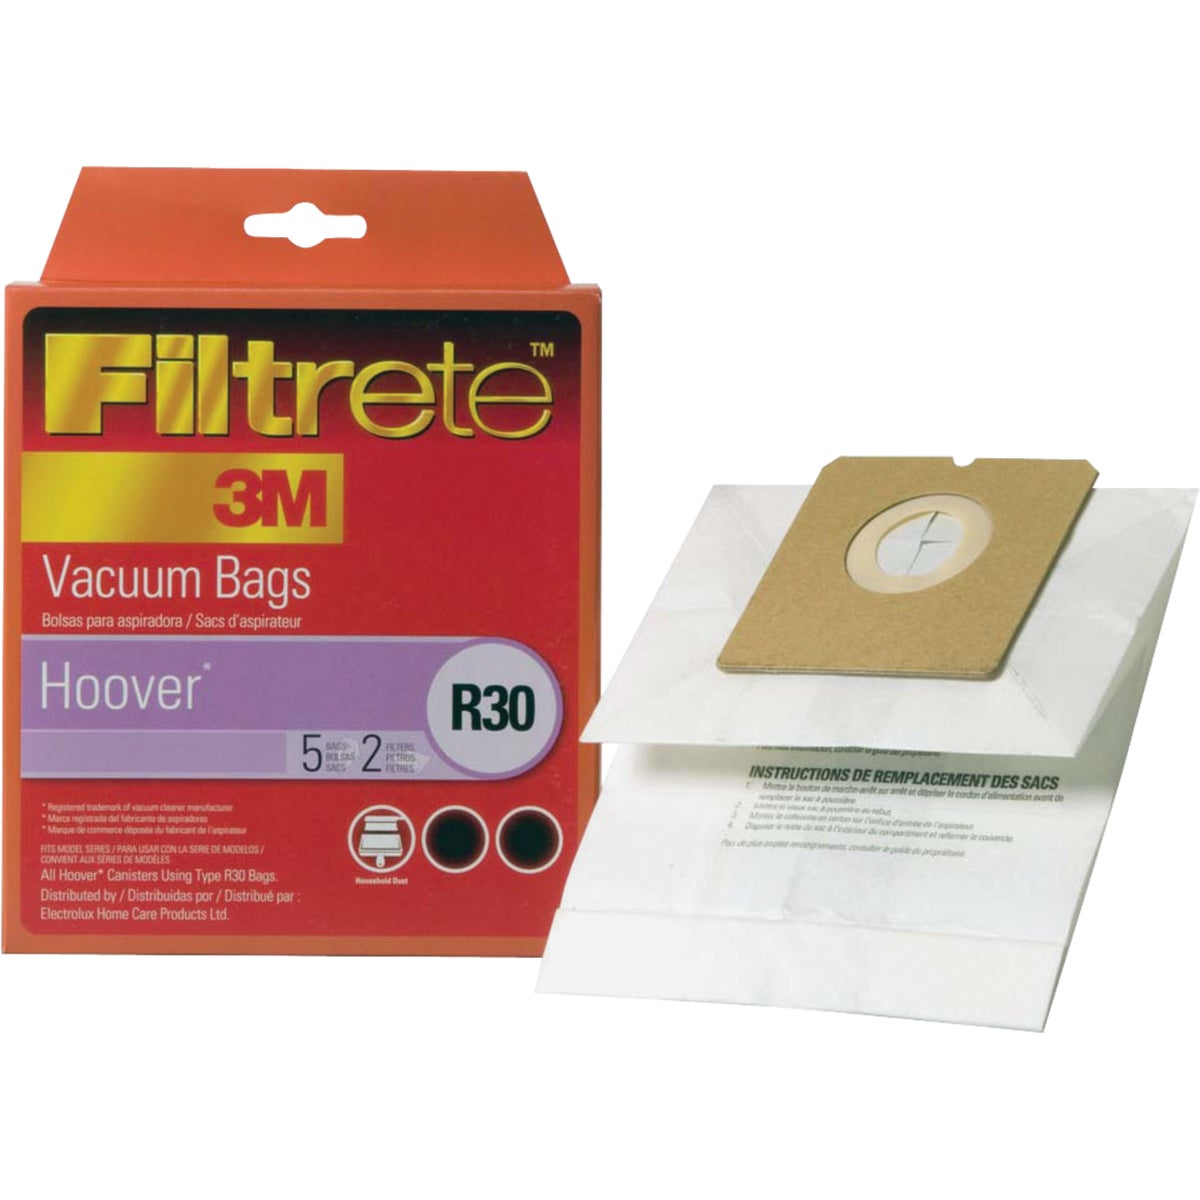 HOOVER R30 VACUUM BAG - 64706B-6 by Electrolux Home Care